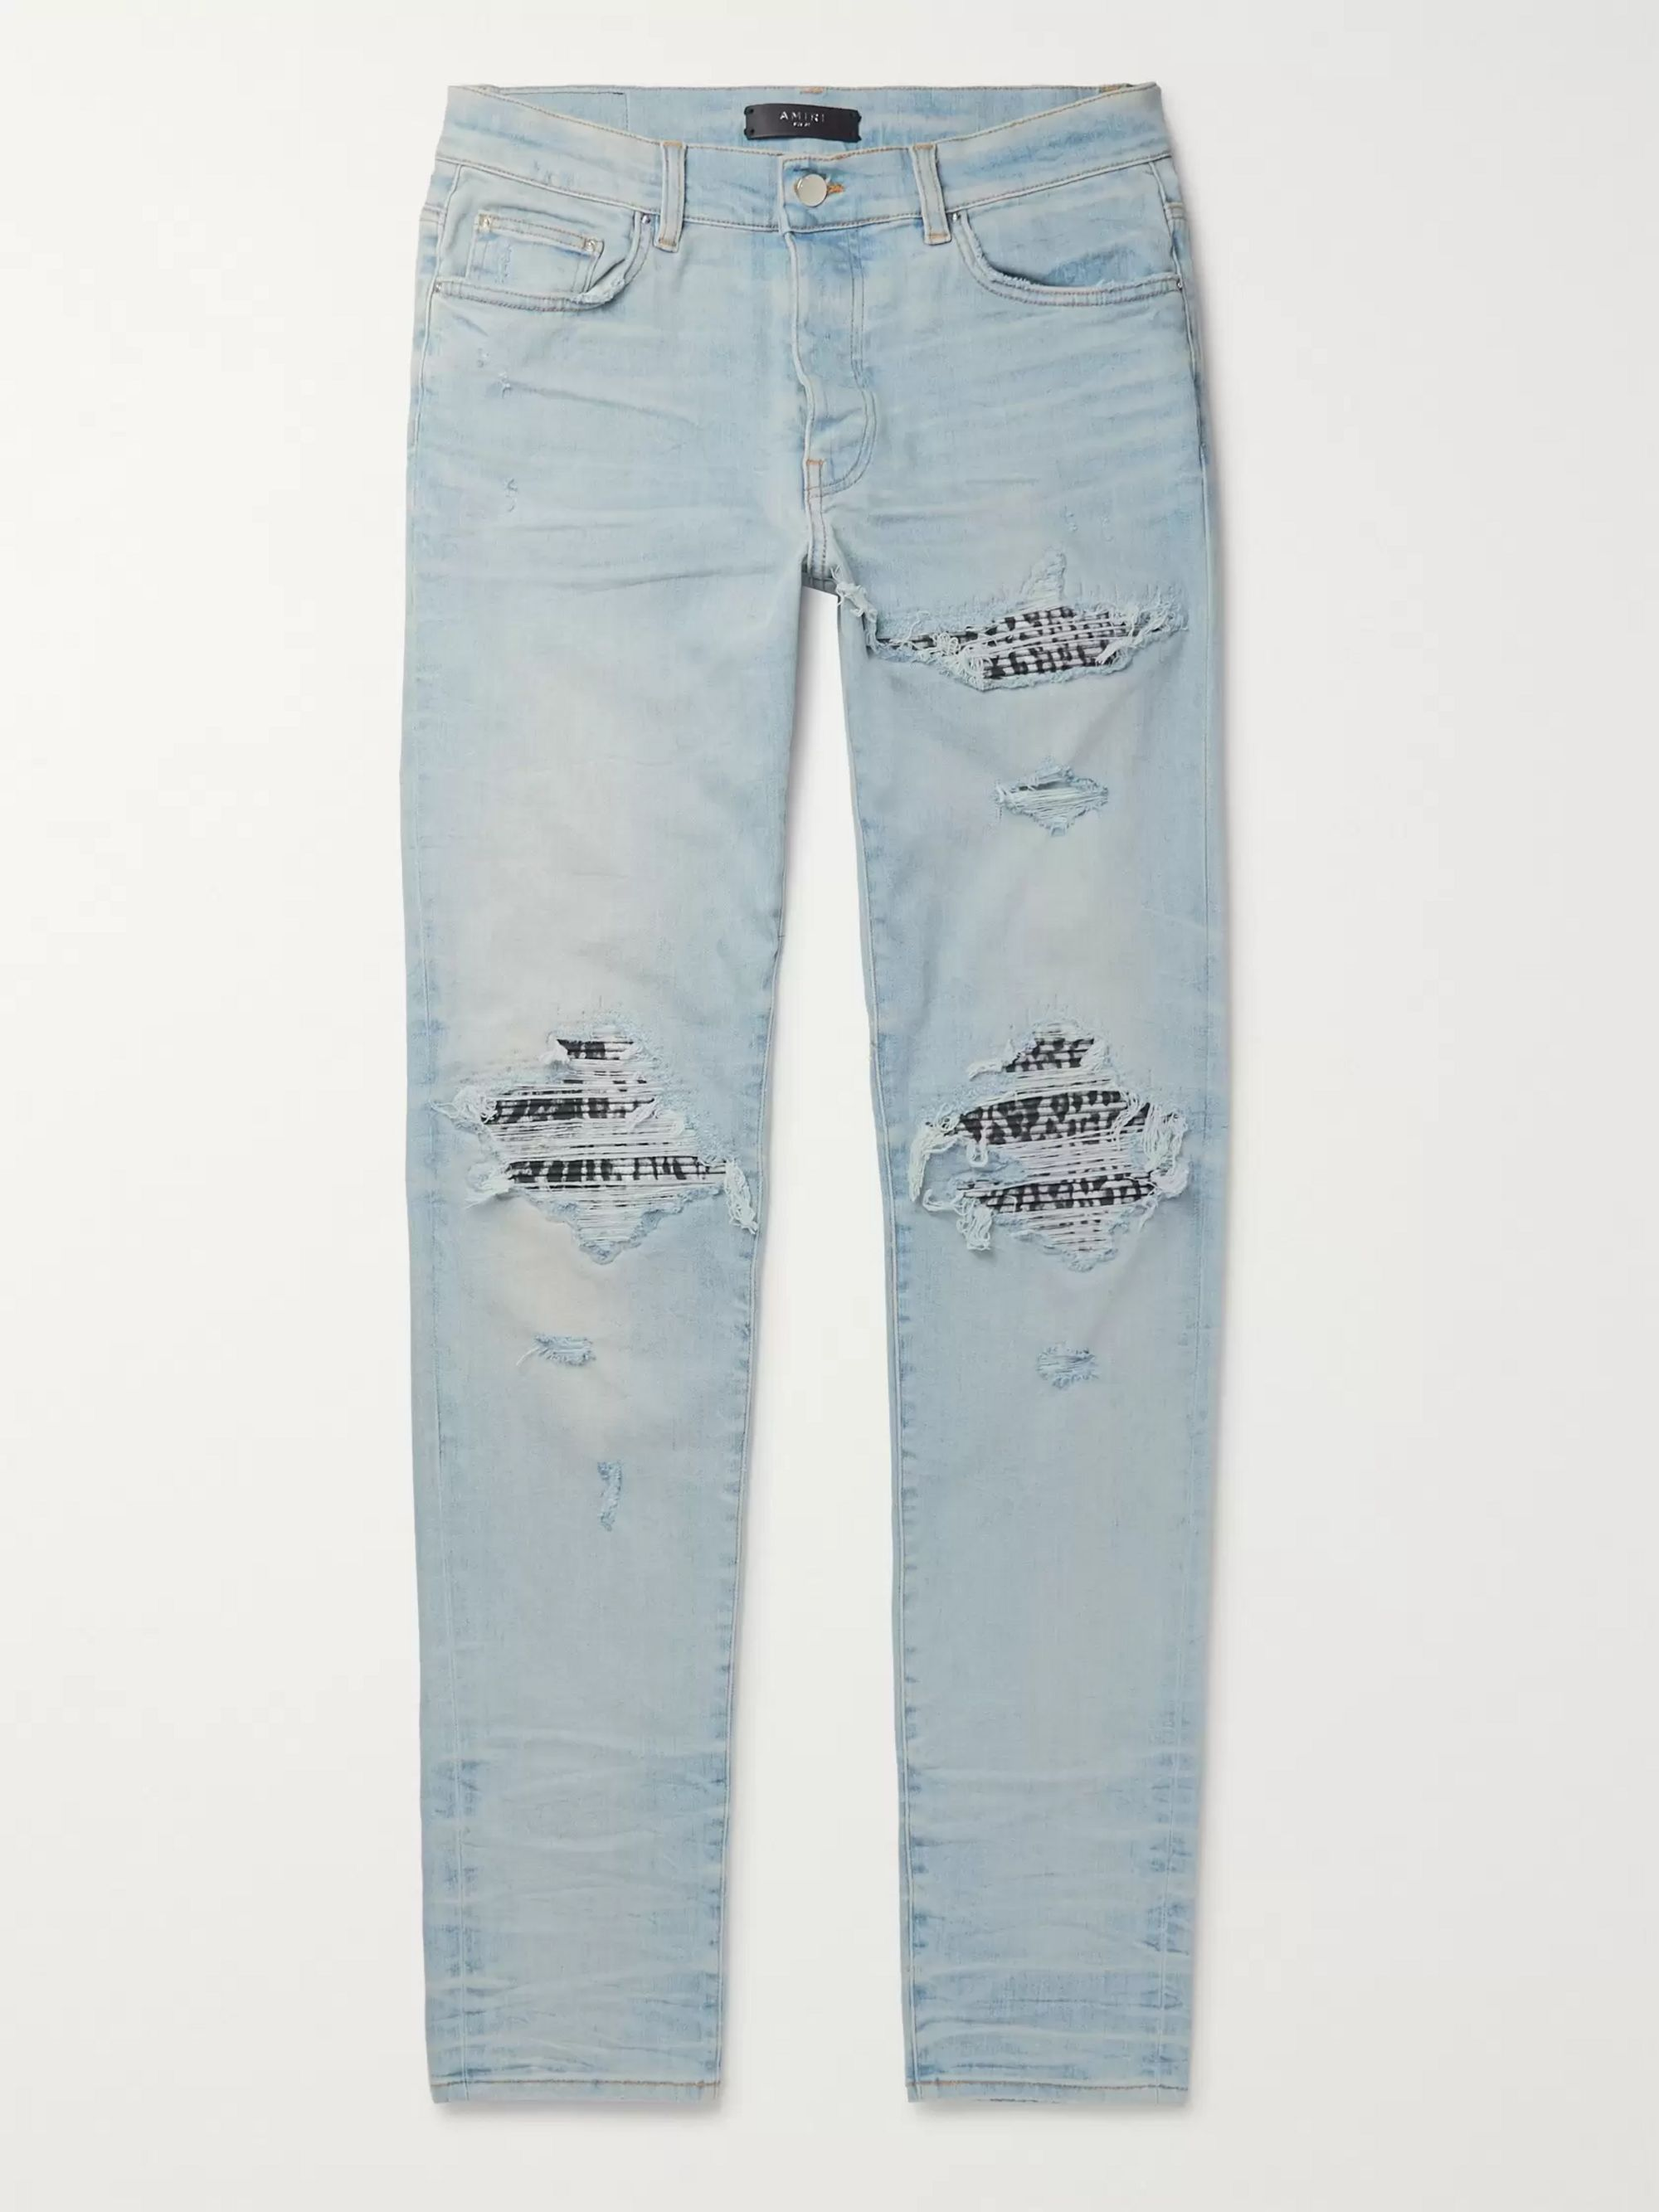 MX1 Skinny Fit Panelled Distressed Stretch Denim Jeans